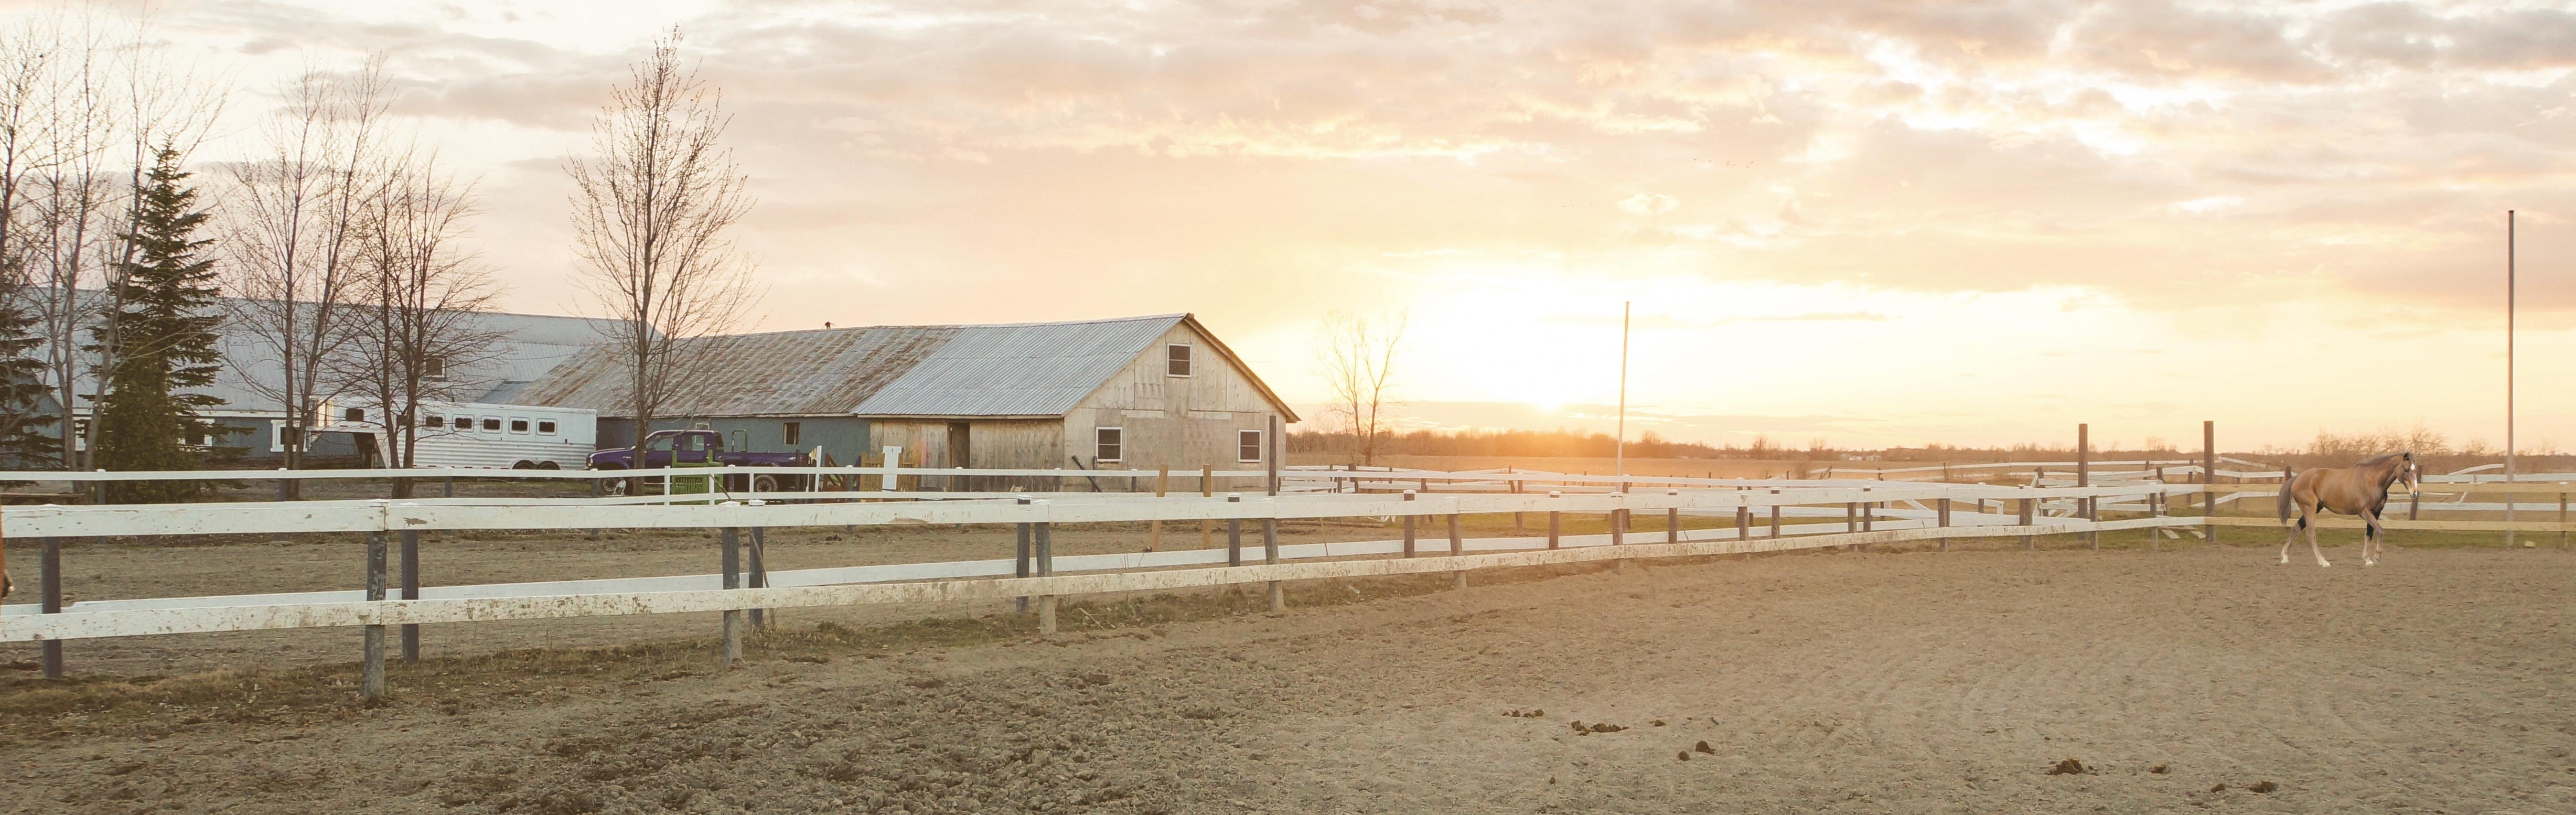 Barns and Corral at sunrise - Horse Properties for Sale, Arizona Horse Property, East Valley, Gilbert Horse Property for Sale - Photo by jon-phillips on Unsplash